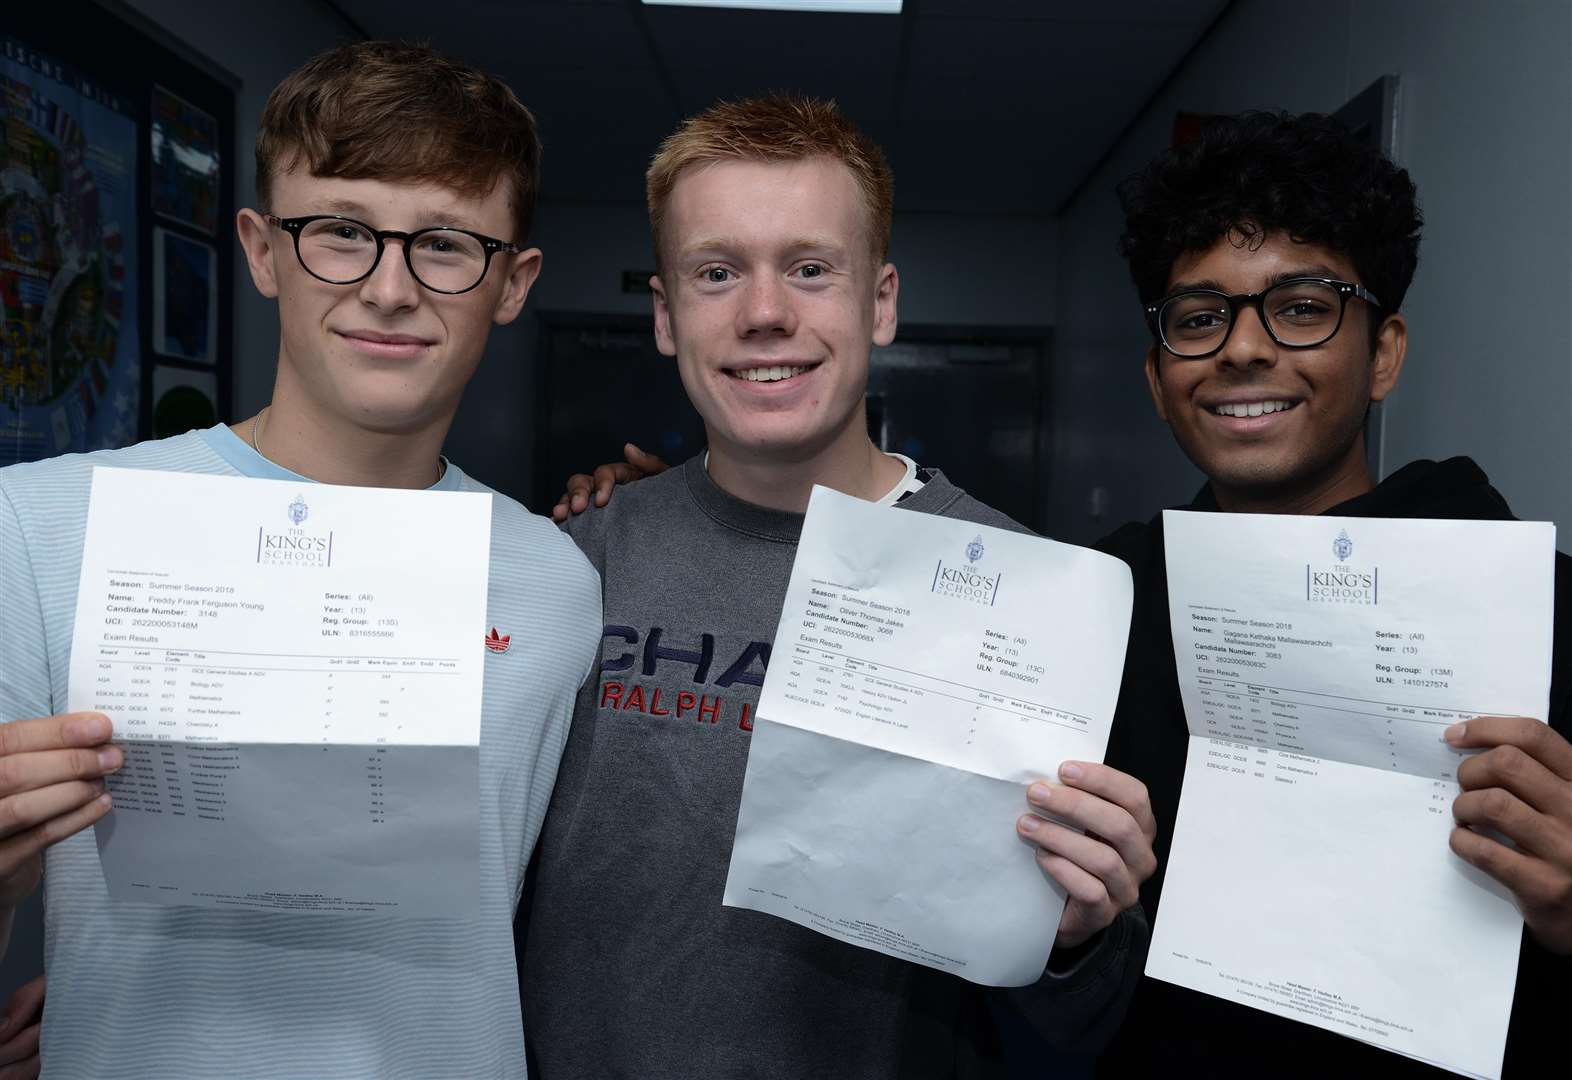 A-levels: More impressive results from The King's School